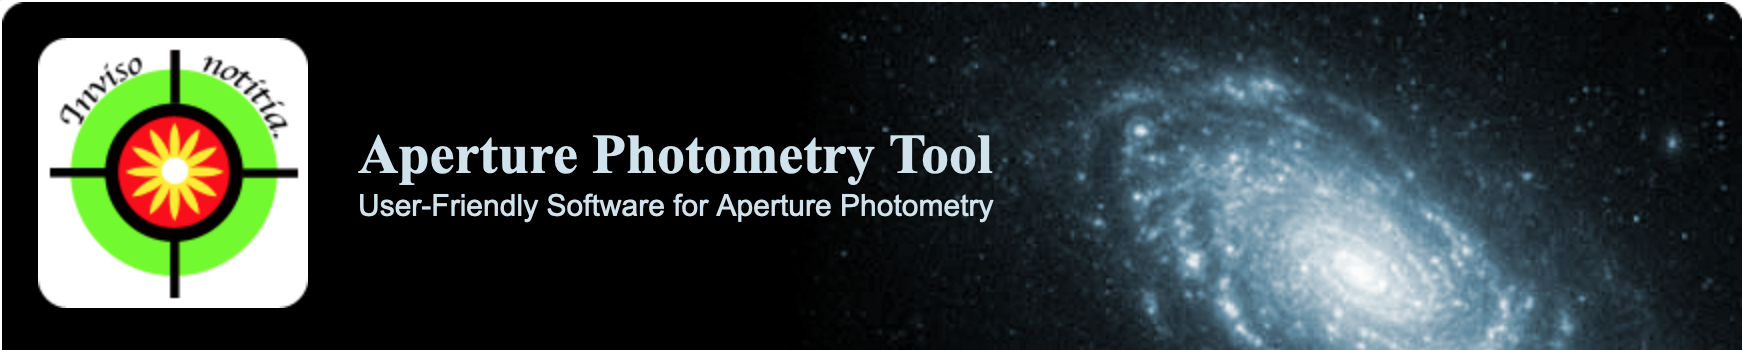 Aperture Photometry Tool